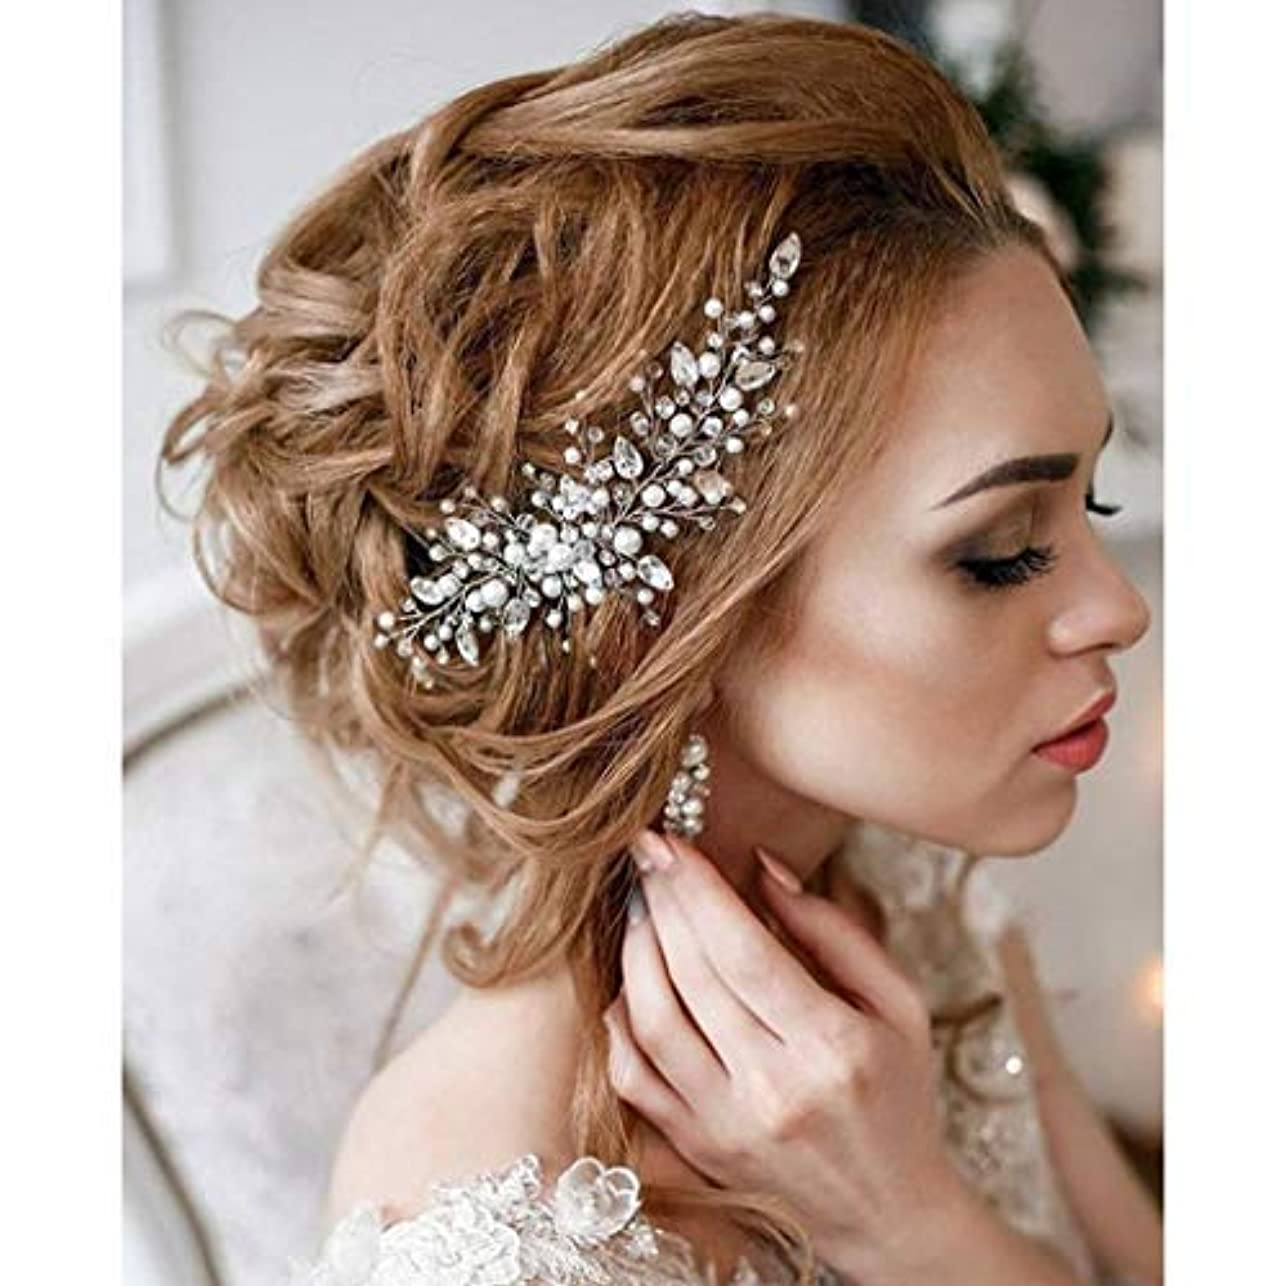 ブラスト経済ファイバAukmla Bride Wedding Hair Combs Bridal Hair Accessories Decorative for Brides and Bridesmaids [並行輸入品]